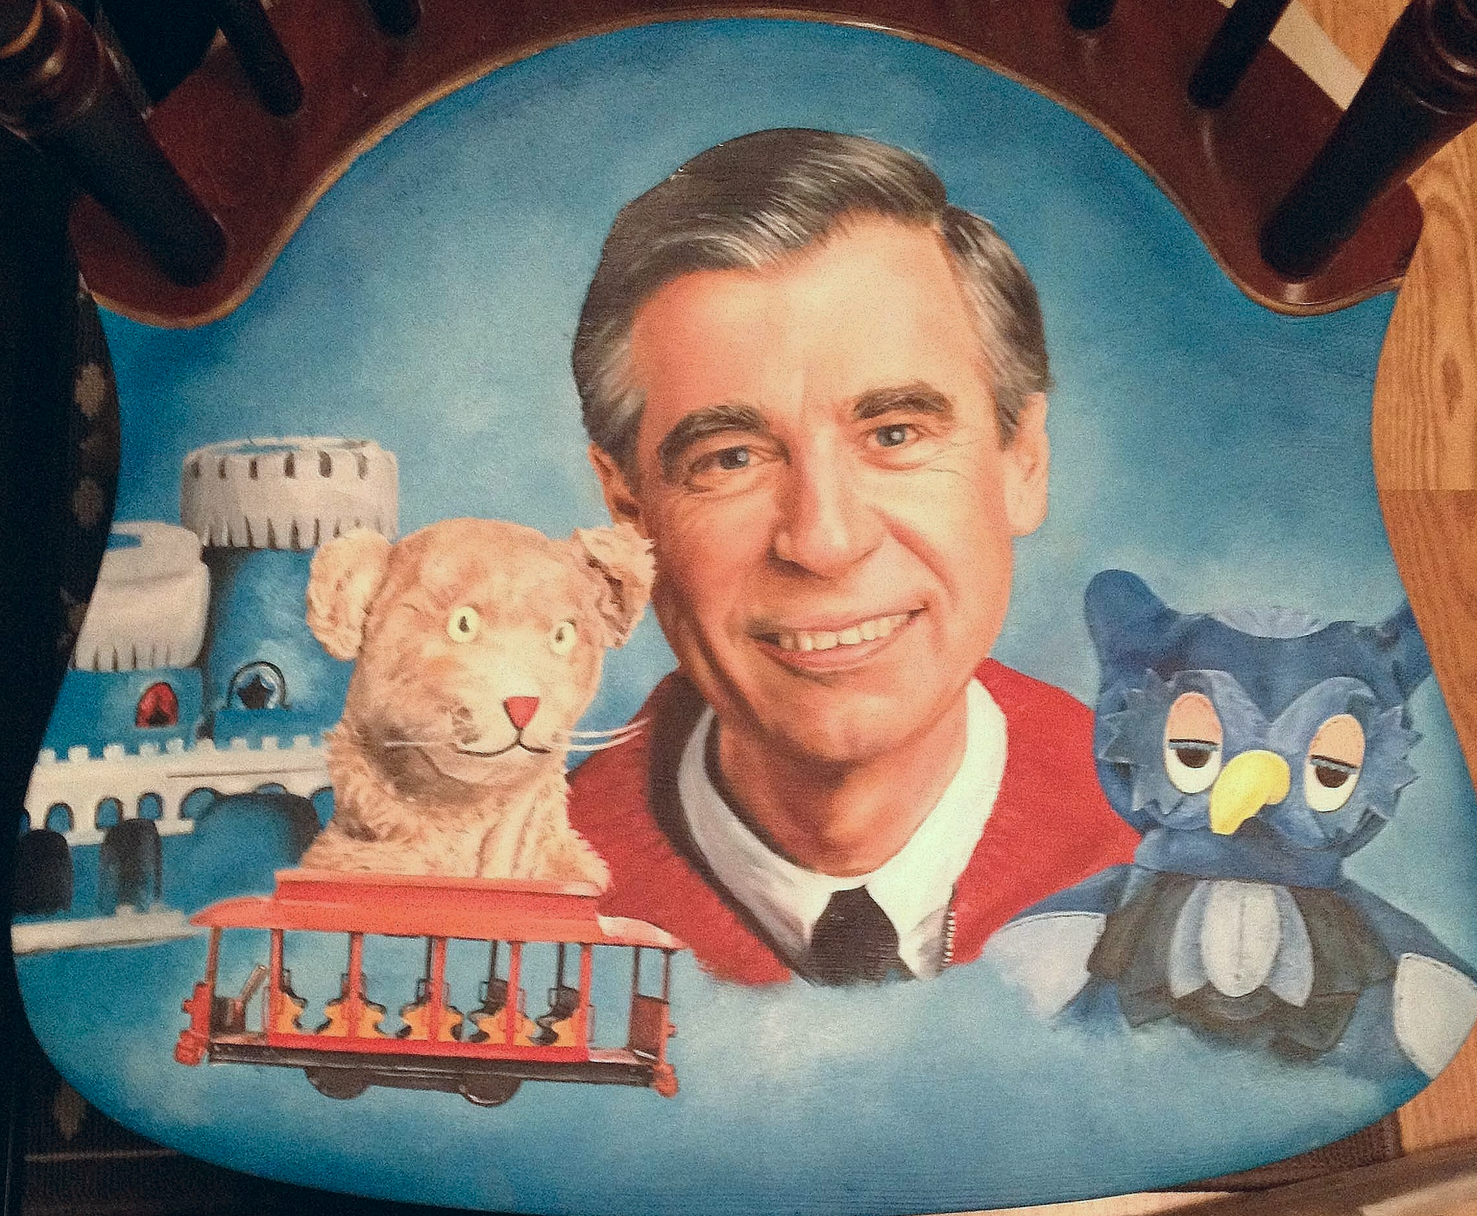 Photo 6. At the last minute I decide to add King Fridays's castle. I originally wanted King Friday and Lady Elaine in the chair design but I drew Mr. Rogers and X the Owl too big for my original plan. Just a few more highlights to Mr. Rogers hair and tweaks here and there. Almost done!